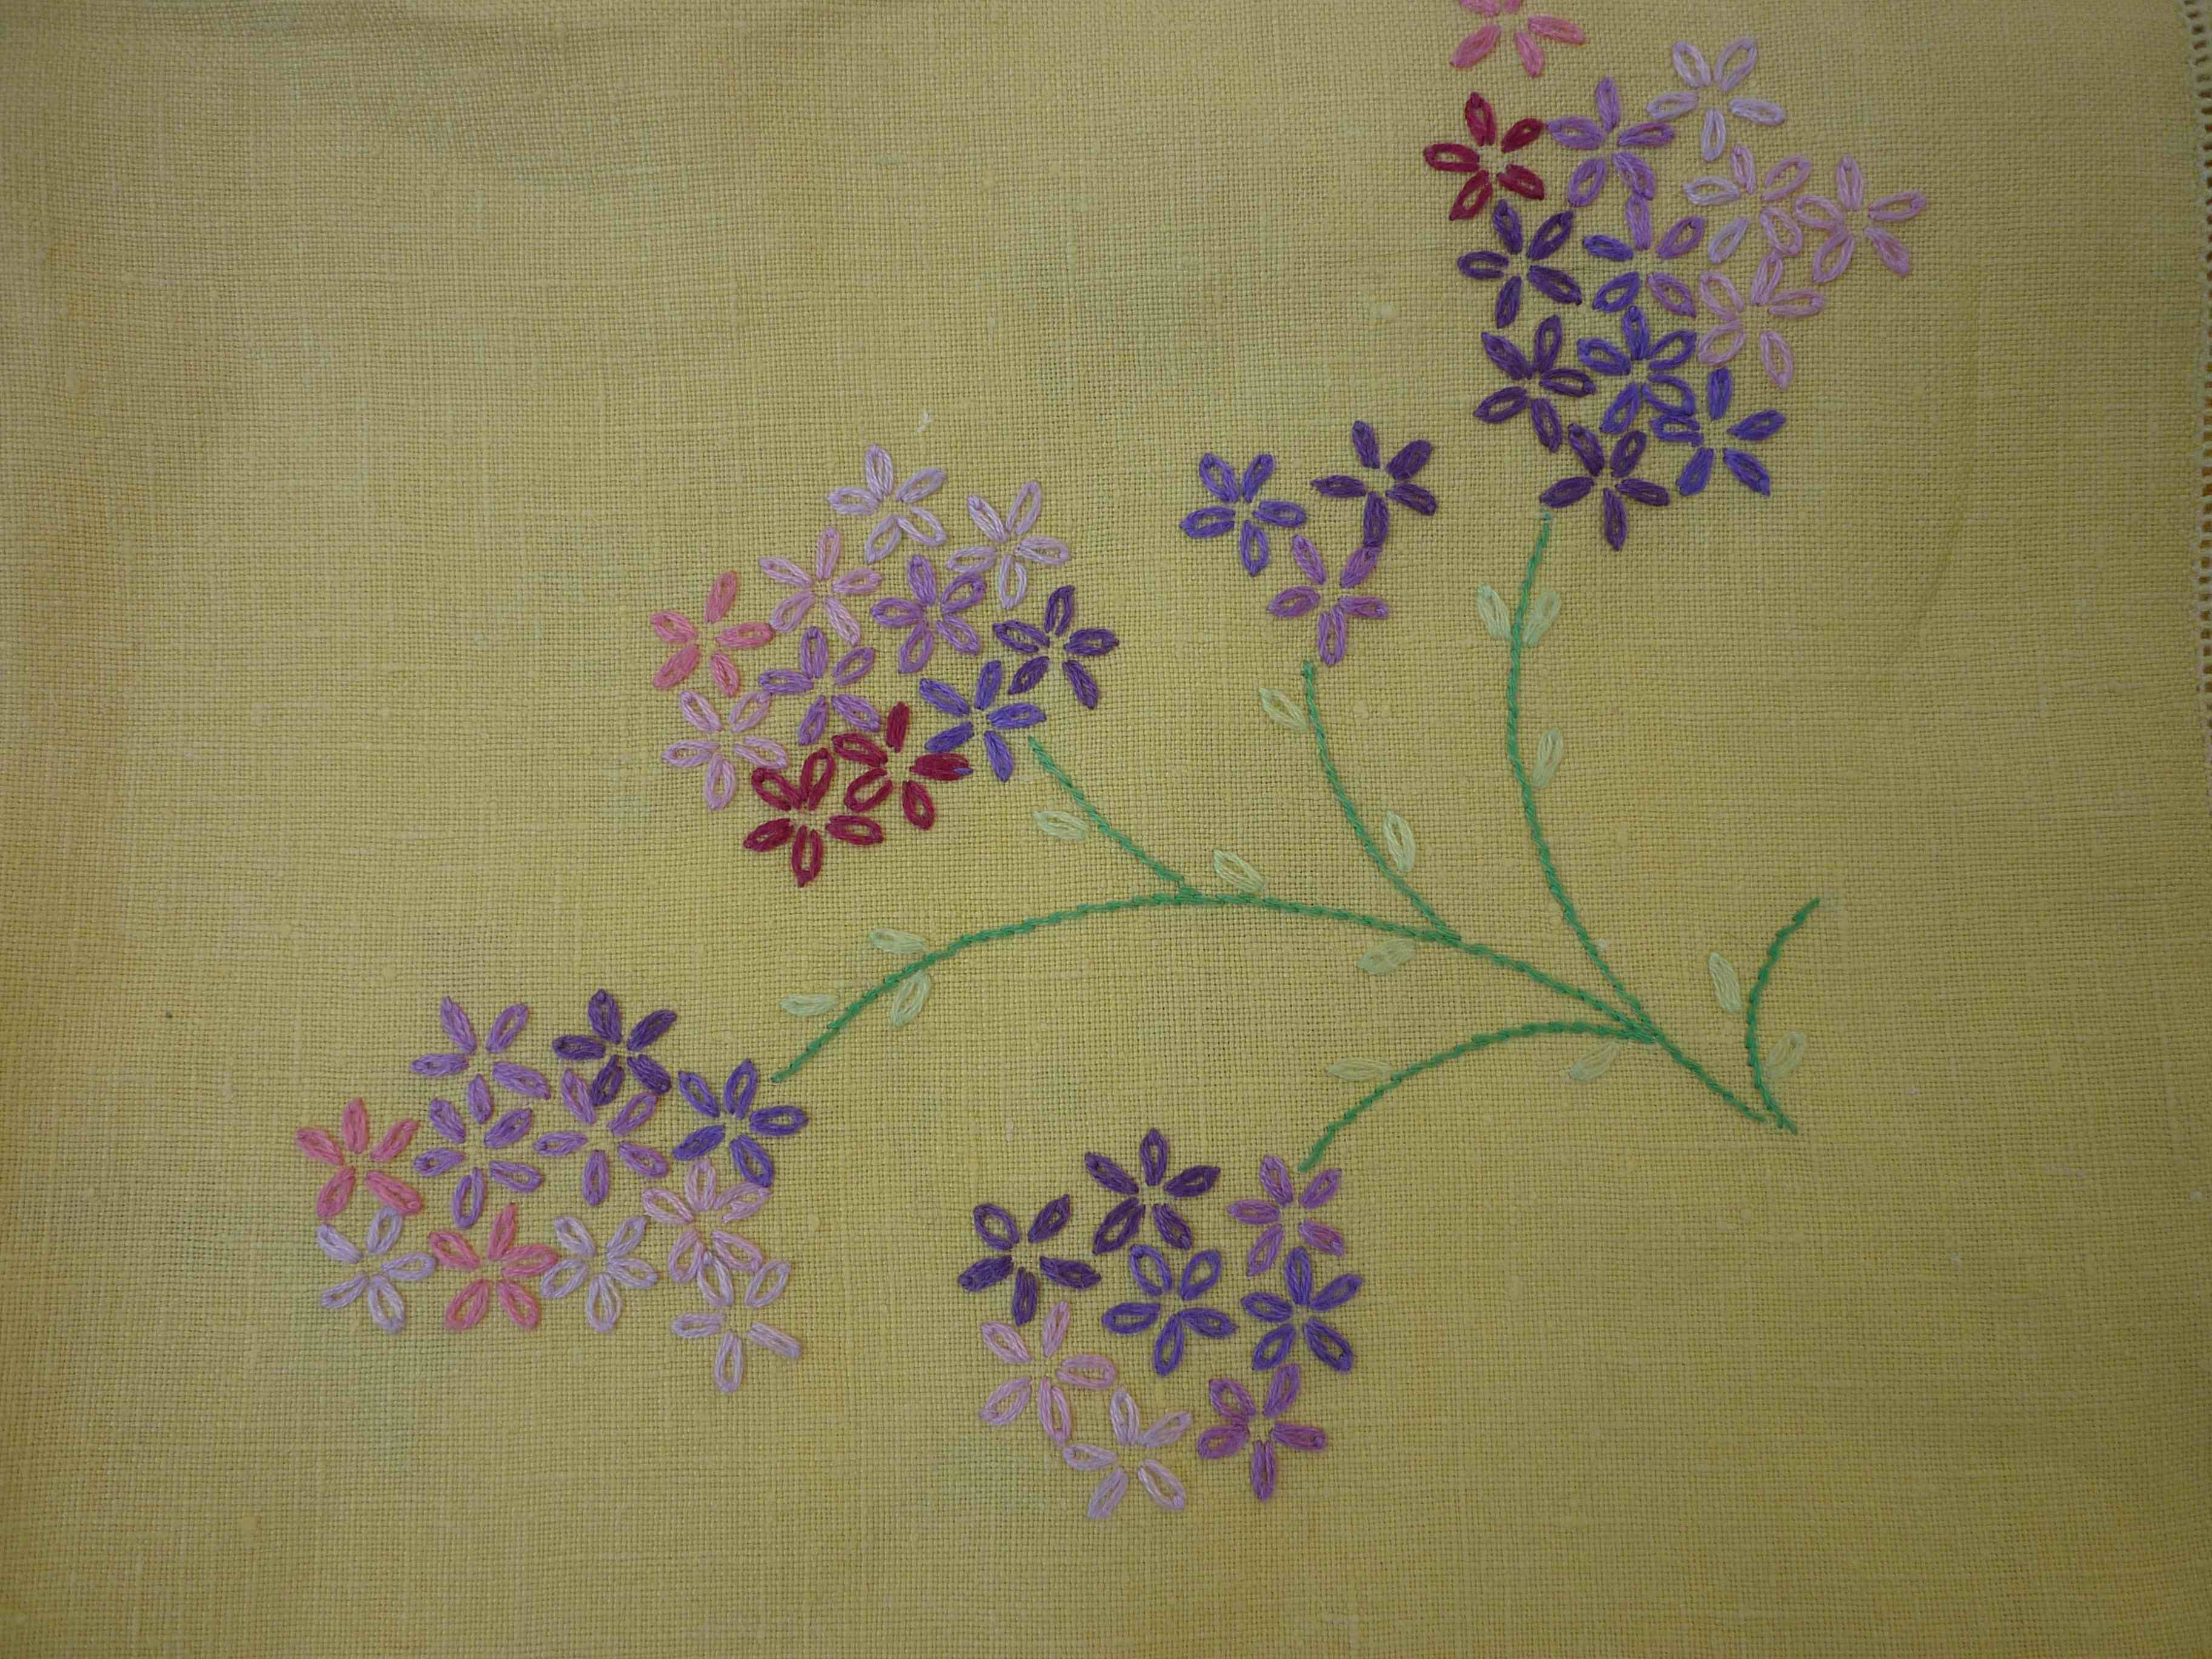 Simple hand embroidery designs for tablecloth - Simple Hand Embroidery Designs For Tablecloth